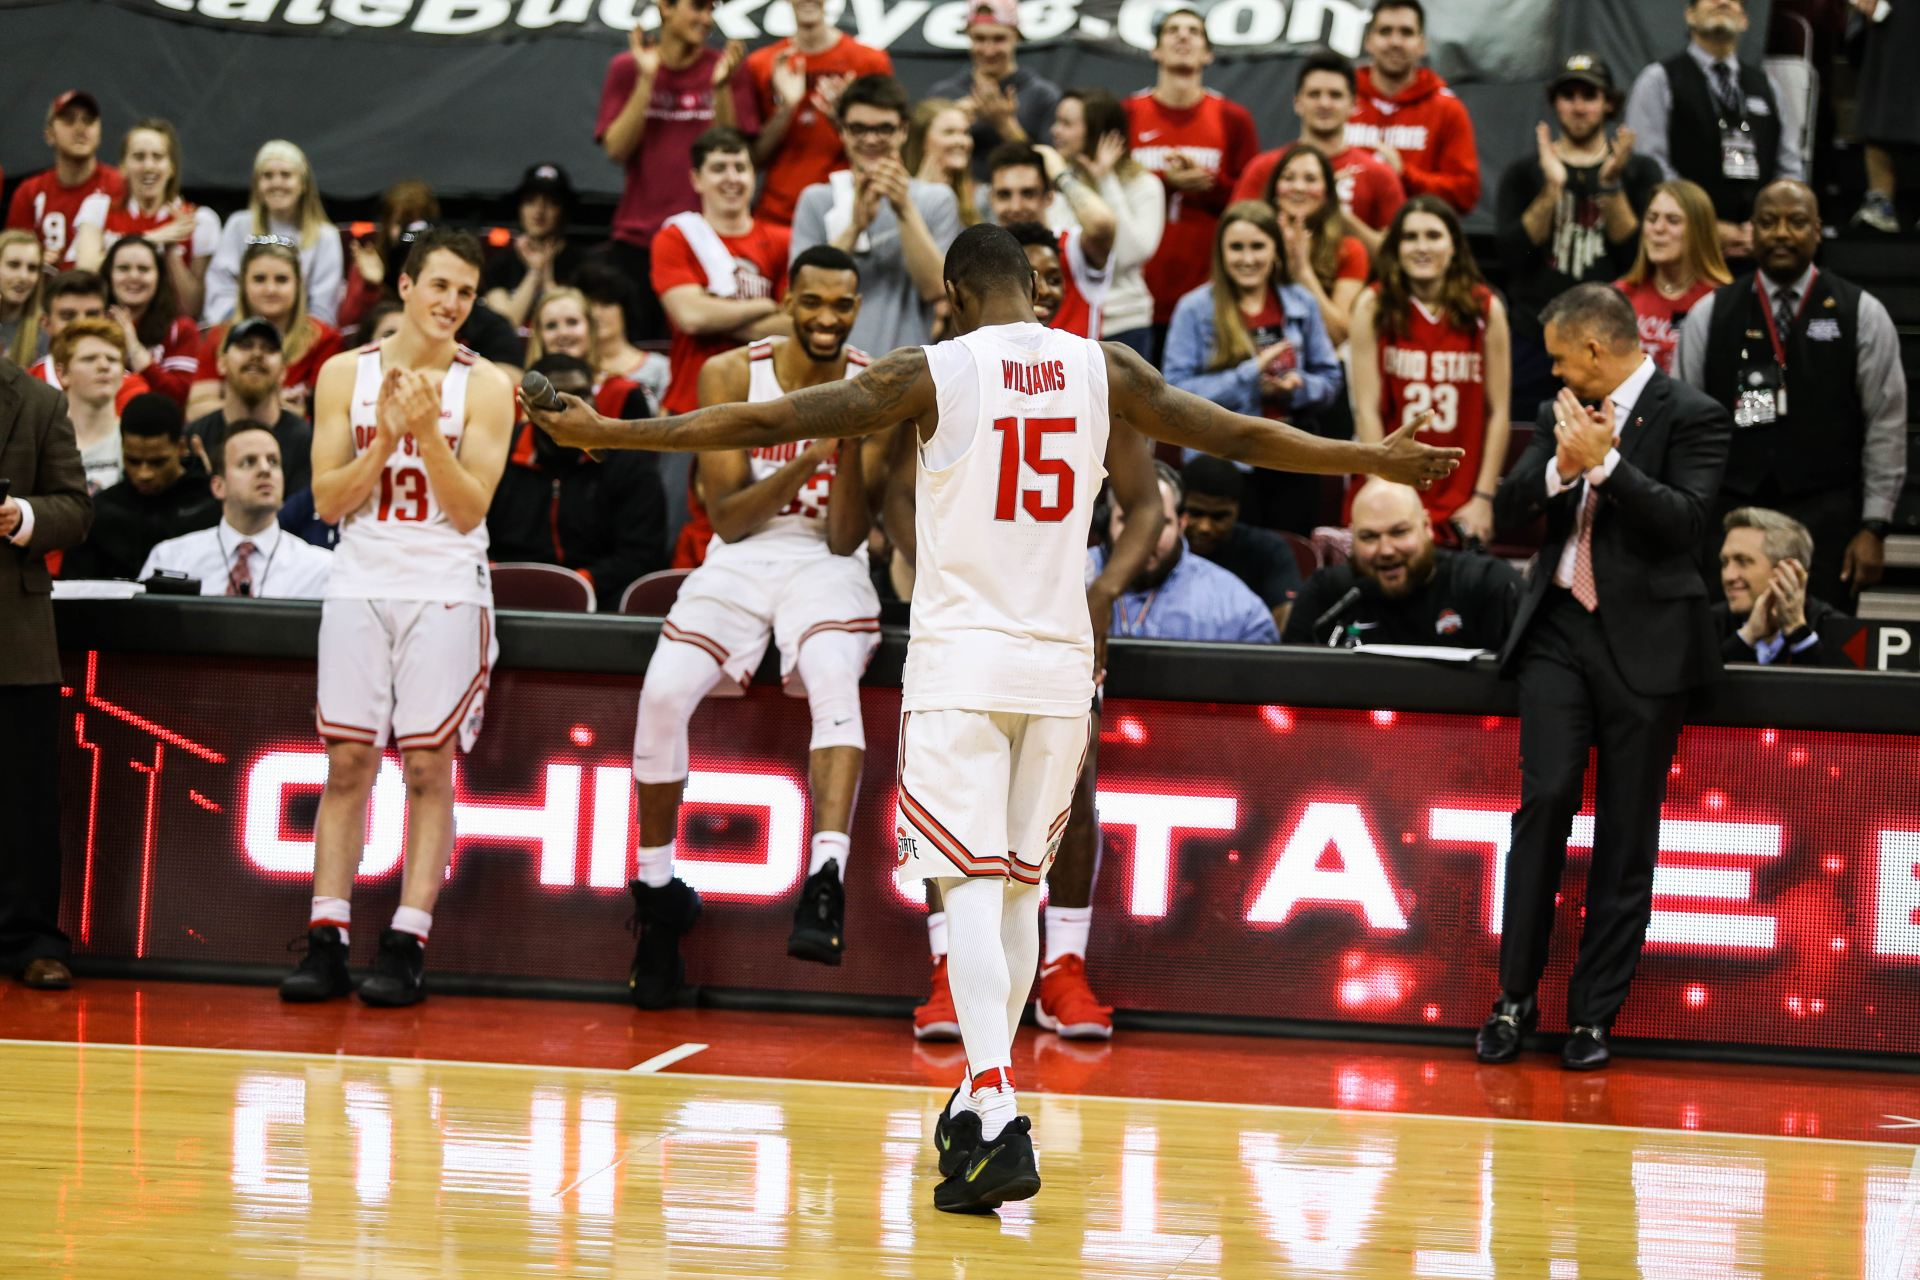 Men's Basketball: No. 5 Ohio State holds off No. 12 South Dakota State 81-73 to advance in NCAA Tournament